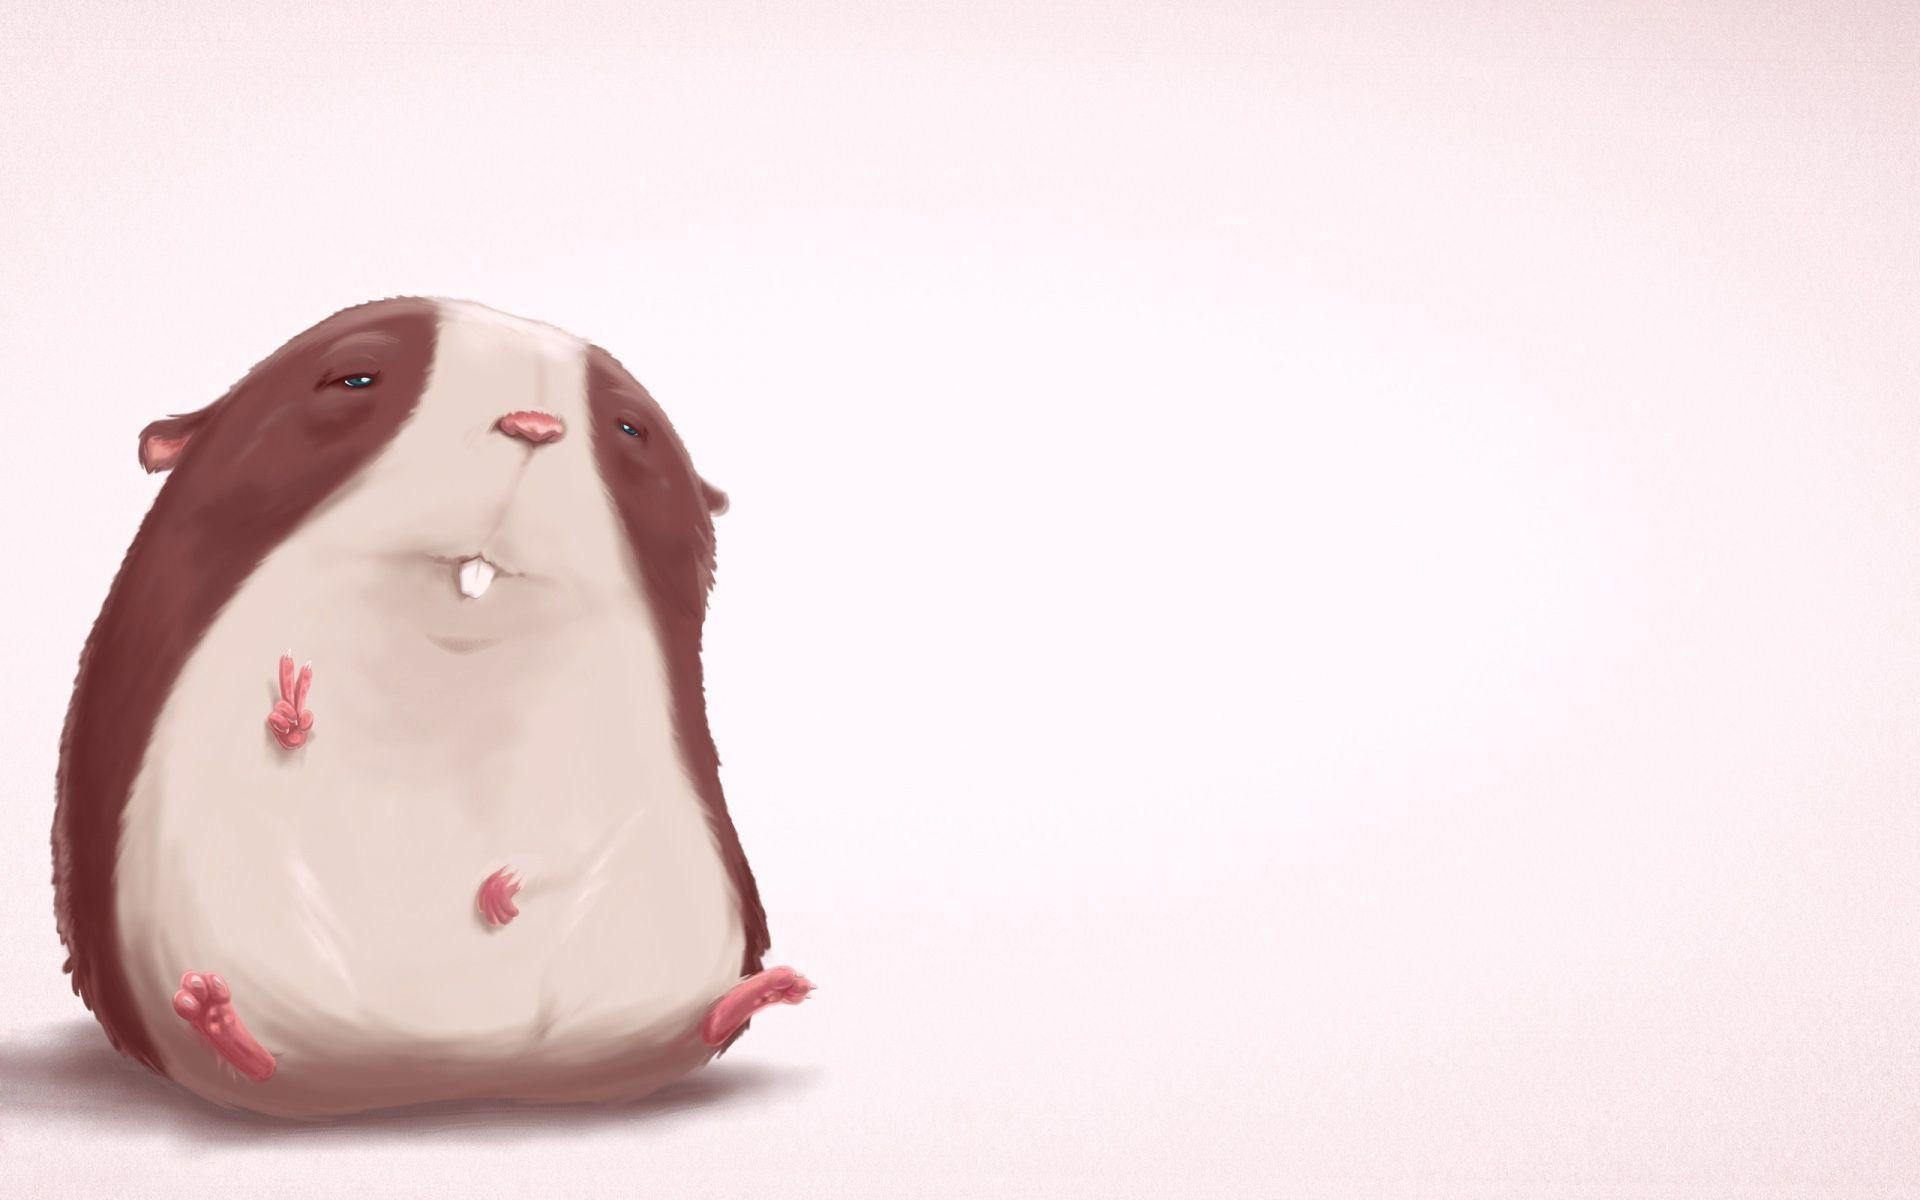 funny hamster wallpapers - wallpaper cave